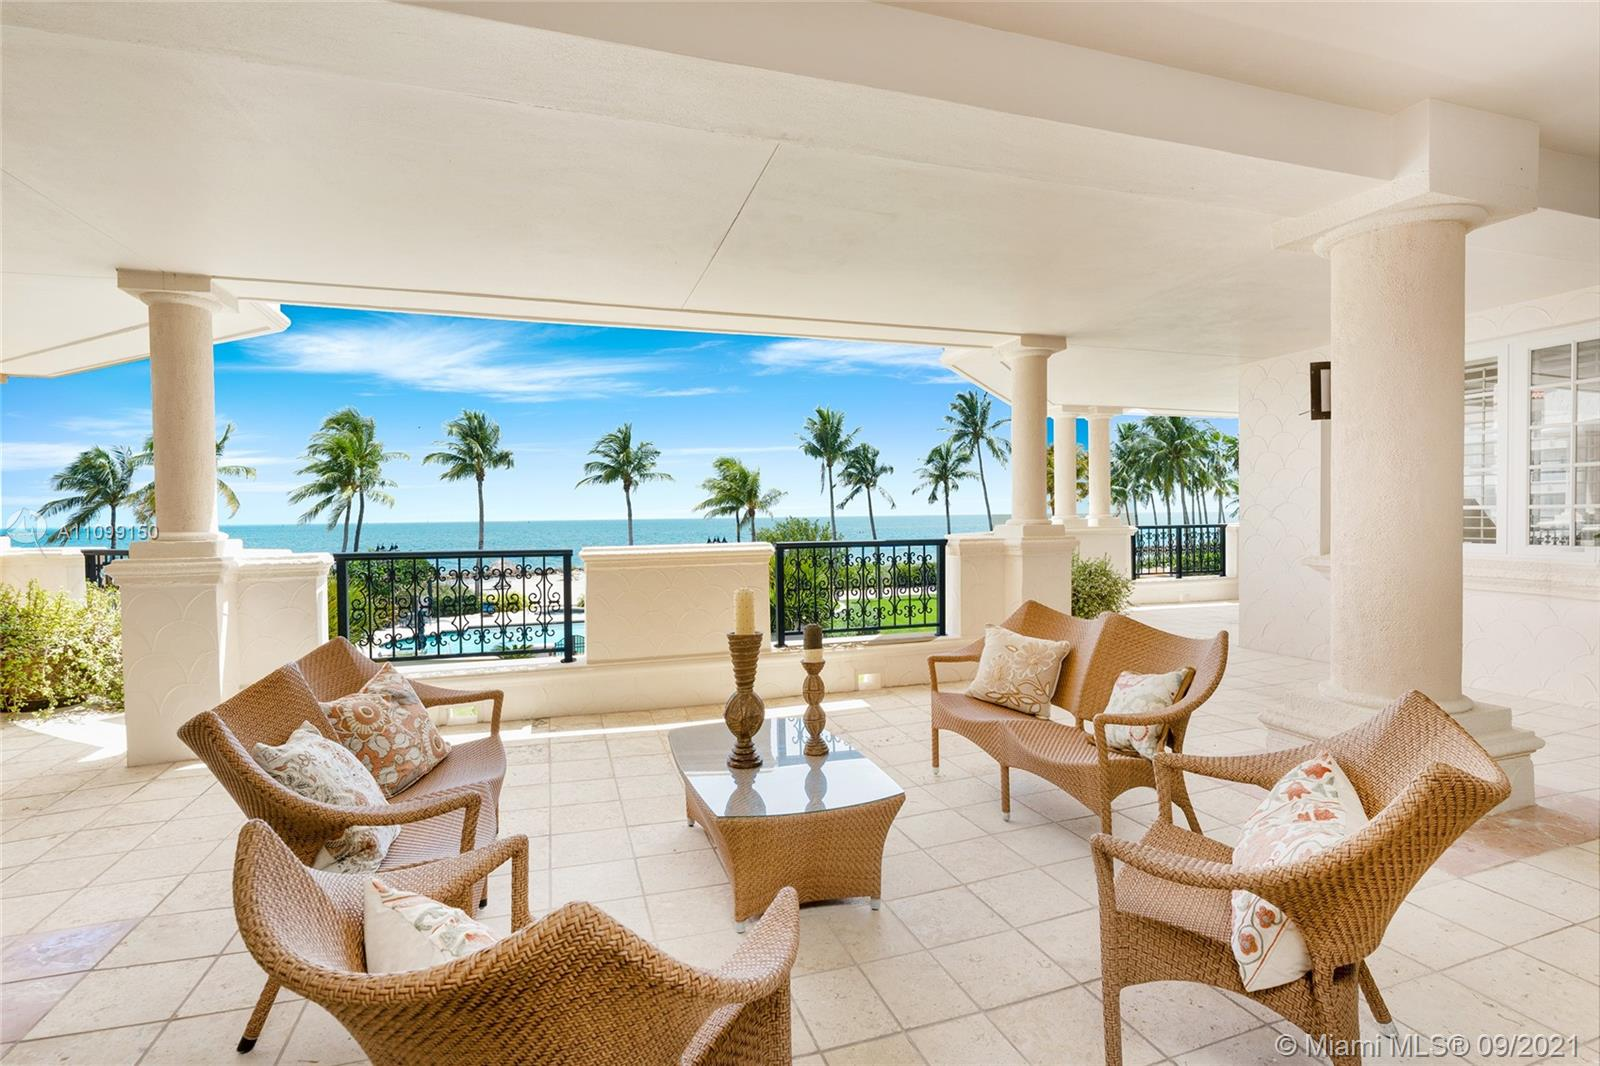 This 2nd floor Oceanside center-stack unit boasts an expansive wraparound terrace w/comfortable seating areas & direct private unobstructed Atlantic Ocean,  beach & Government Cut views. The 4,590 SF unit features fine marble floors, Venetian plaster walls, an open living & dining room layout w/a wet bar & a large family room to relax and entertain all w/terrace access & amazing ocean views. The open chef's kitchen sports custom Allmilmö cabinetry, top-of-the-line Miele, Sub-Zero & Thermador appliances & a breakfast area. A large Oceanside principal suite offers ocean views & a principal bathroom w/dual walk-in closets, glass steam shower & sunken spa tub. The other 2 bedrooms each w/walk-in closets, en-suite baths & access to a private front terrace. Unit sold partially furnished.